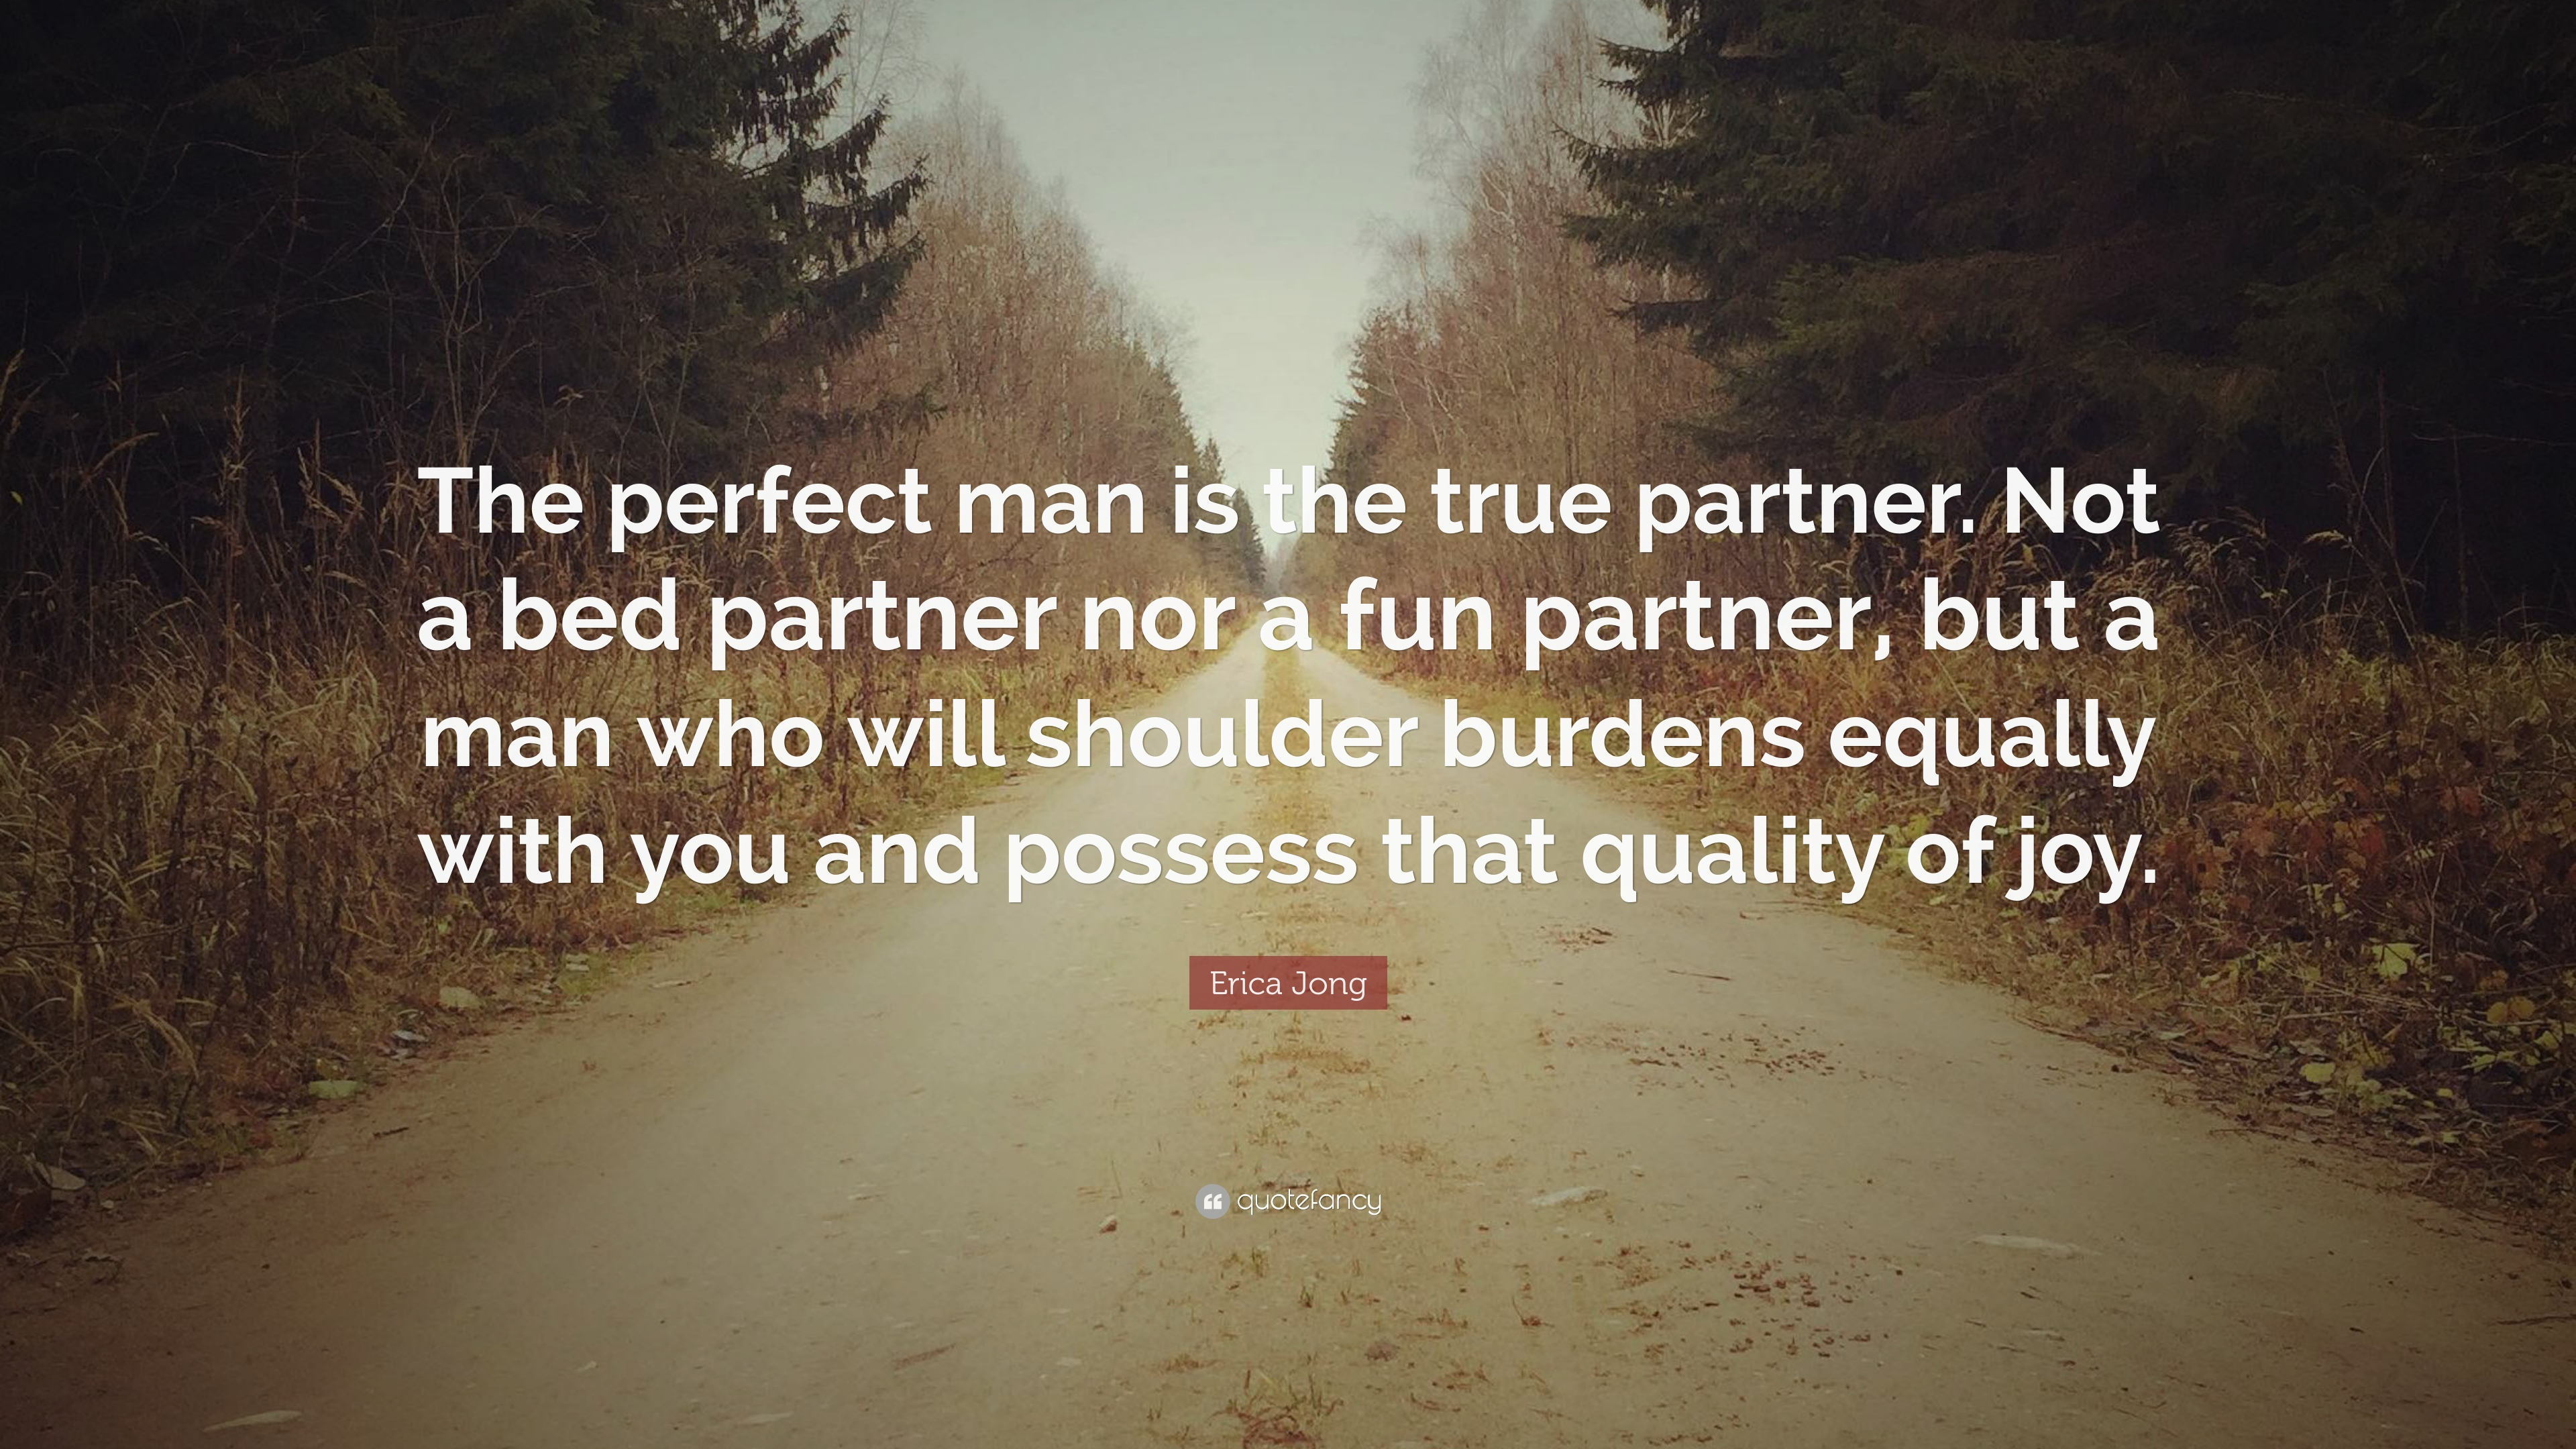 Erica Jong Quote The Perfect Man Is The True Partner Not A Bed